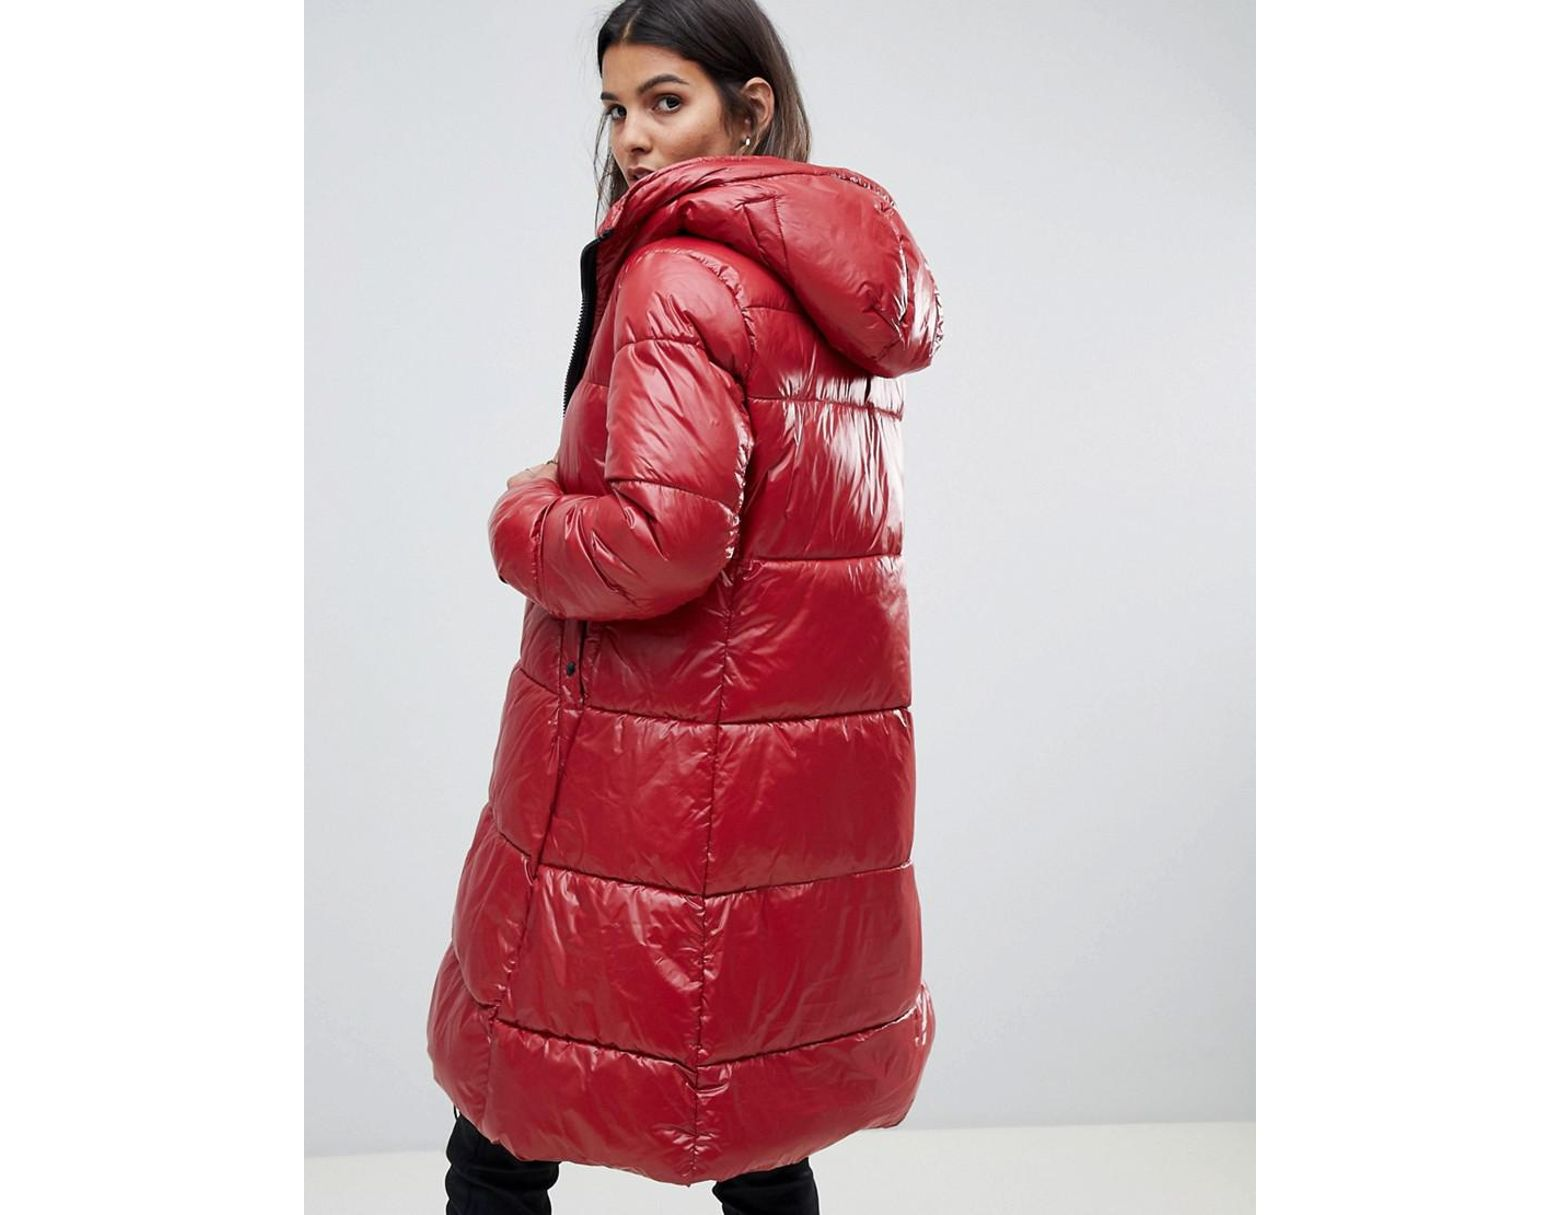 cc8d5aed003 G-Star RAW High Shine Long Line Padded Jacket in Red - Lyst